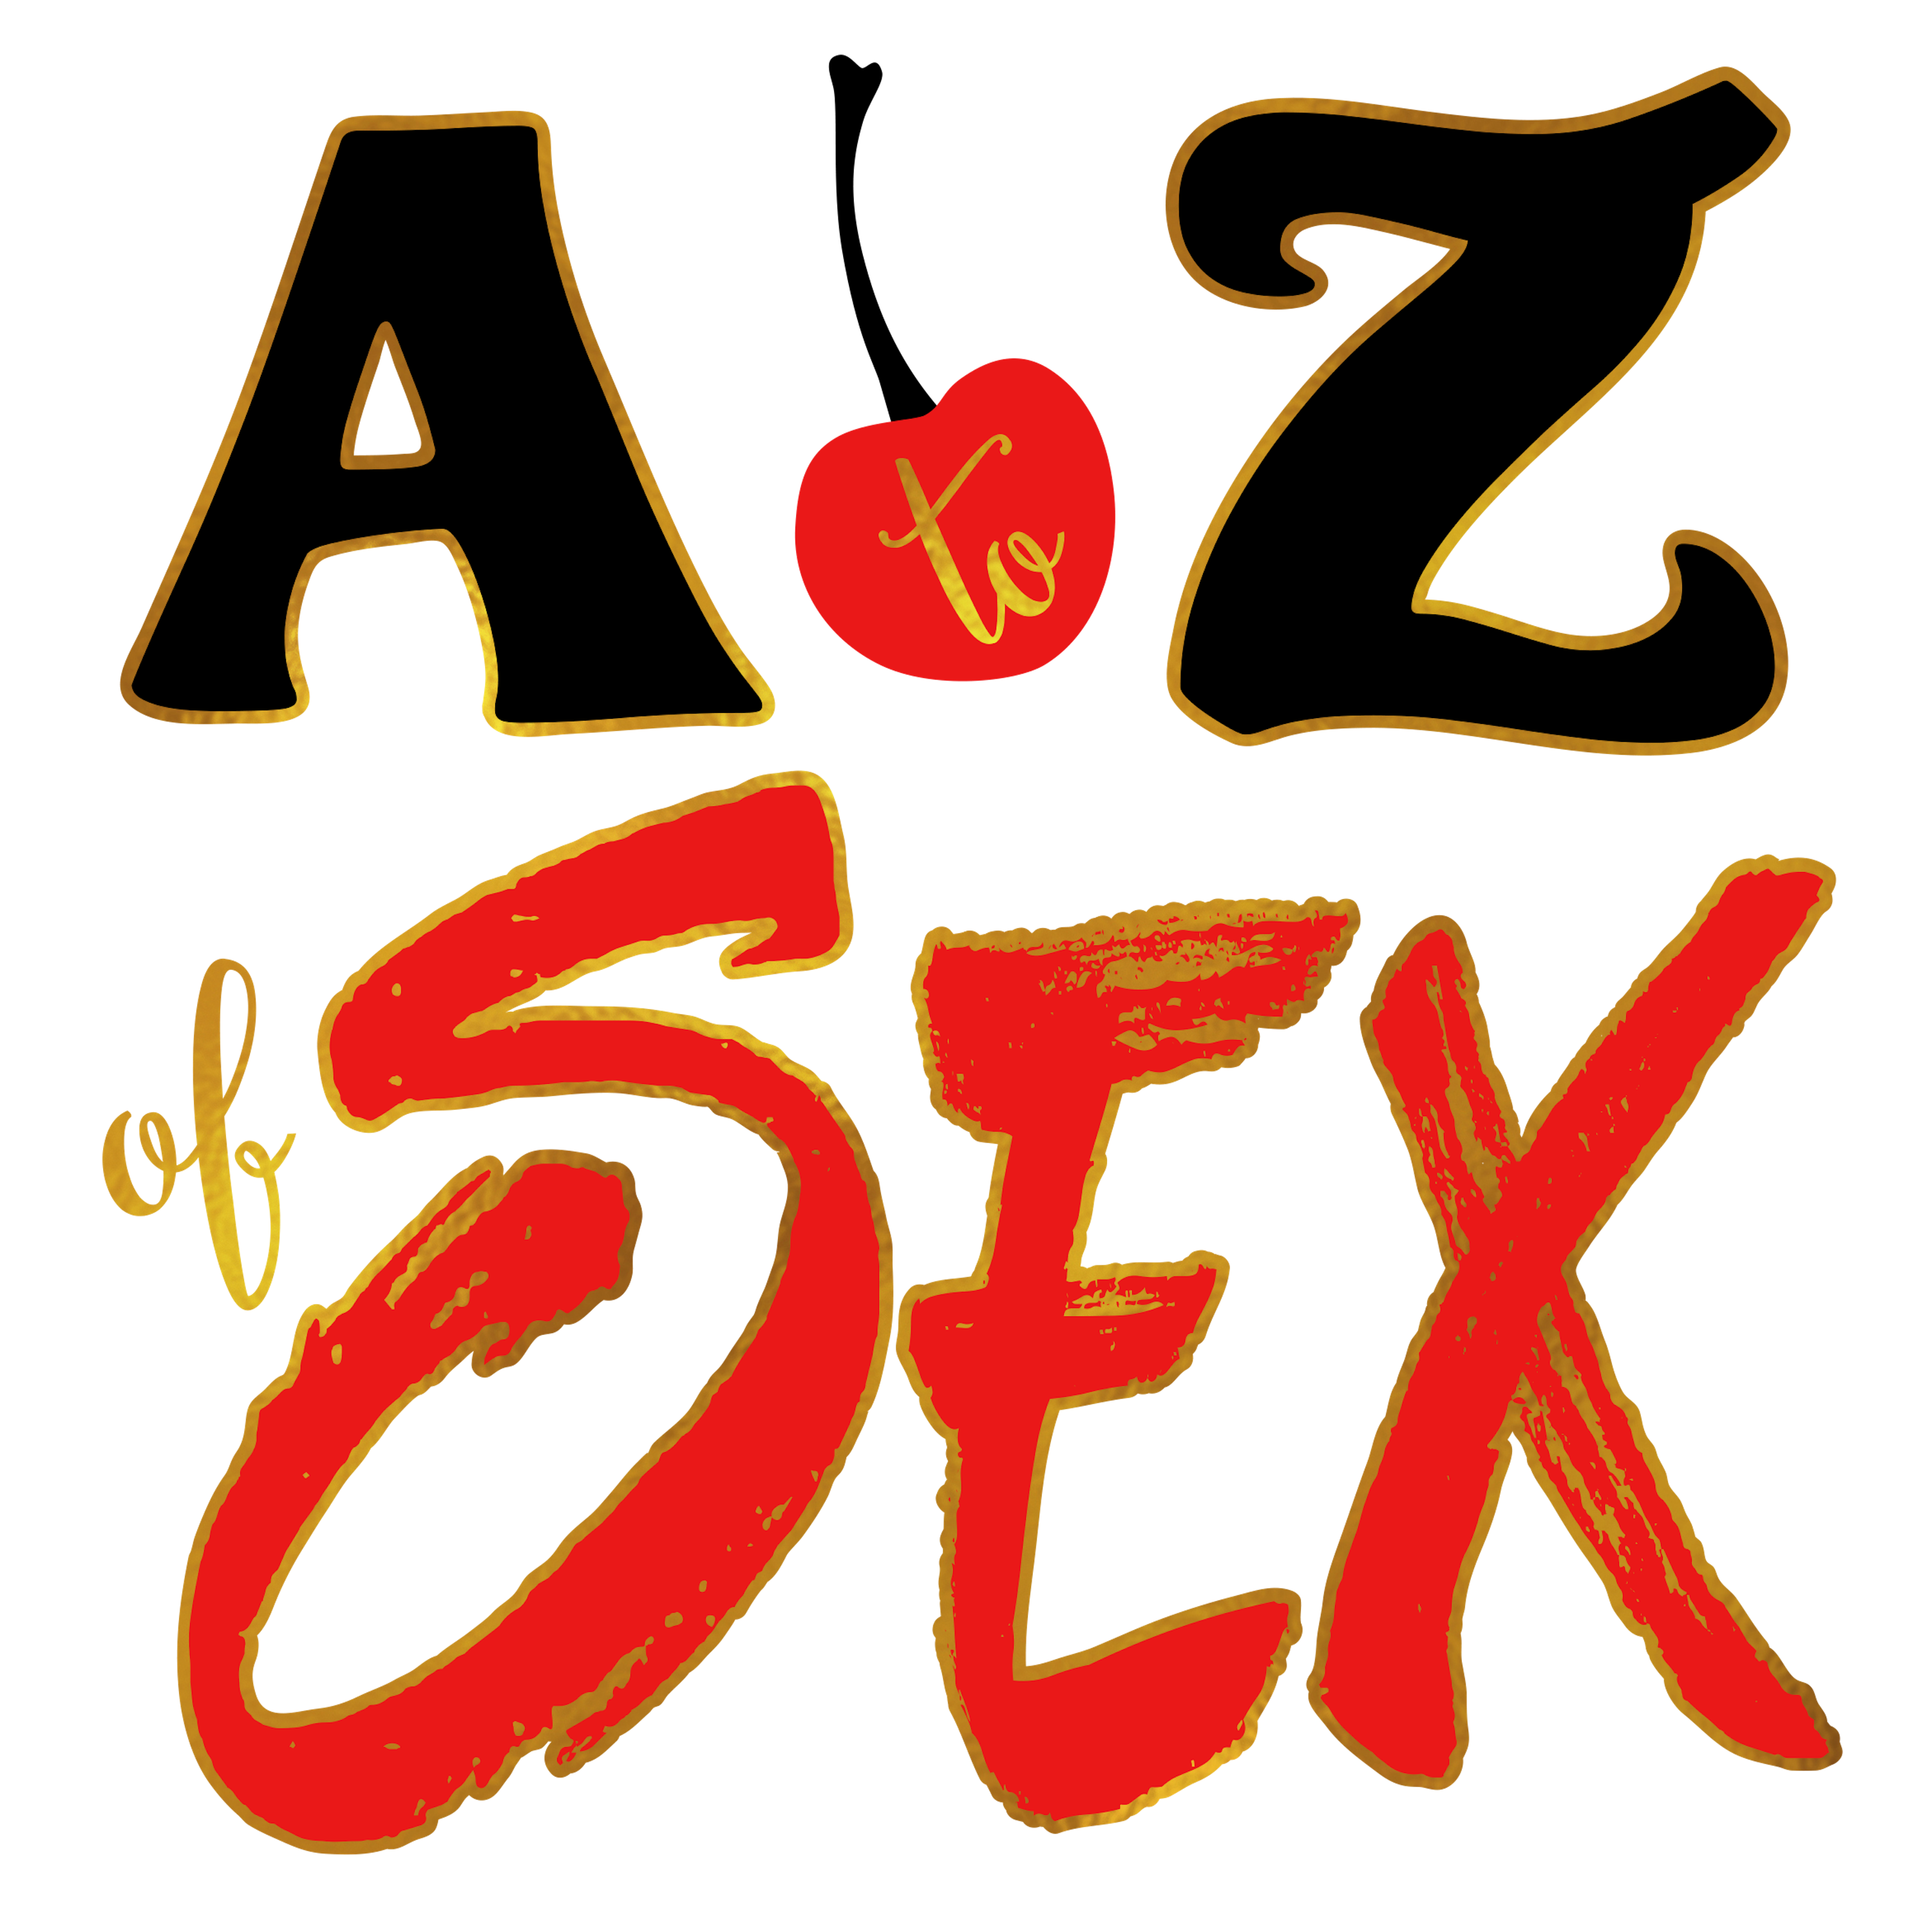 Show artwork for The A to Z of Sex